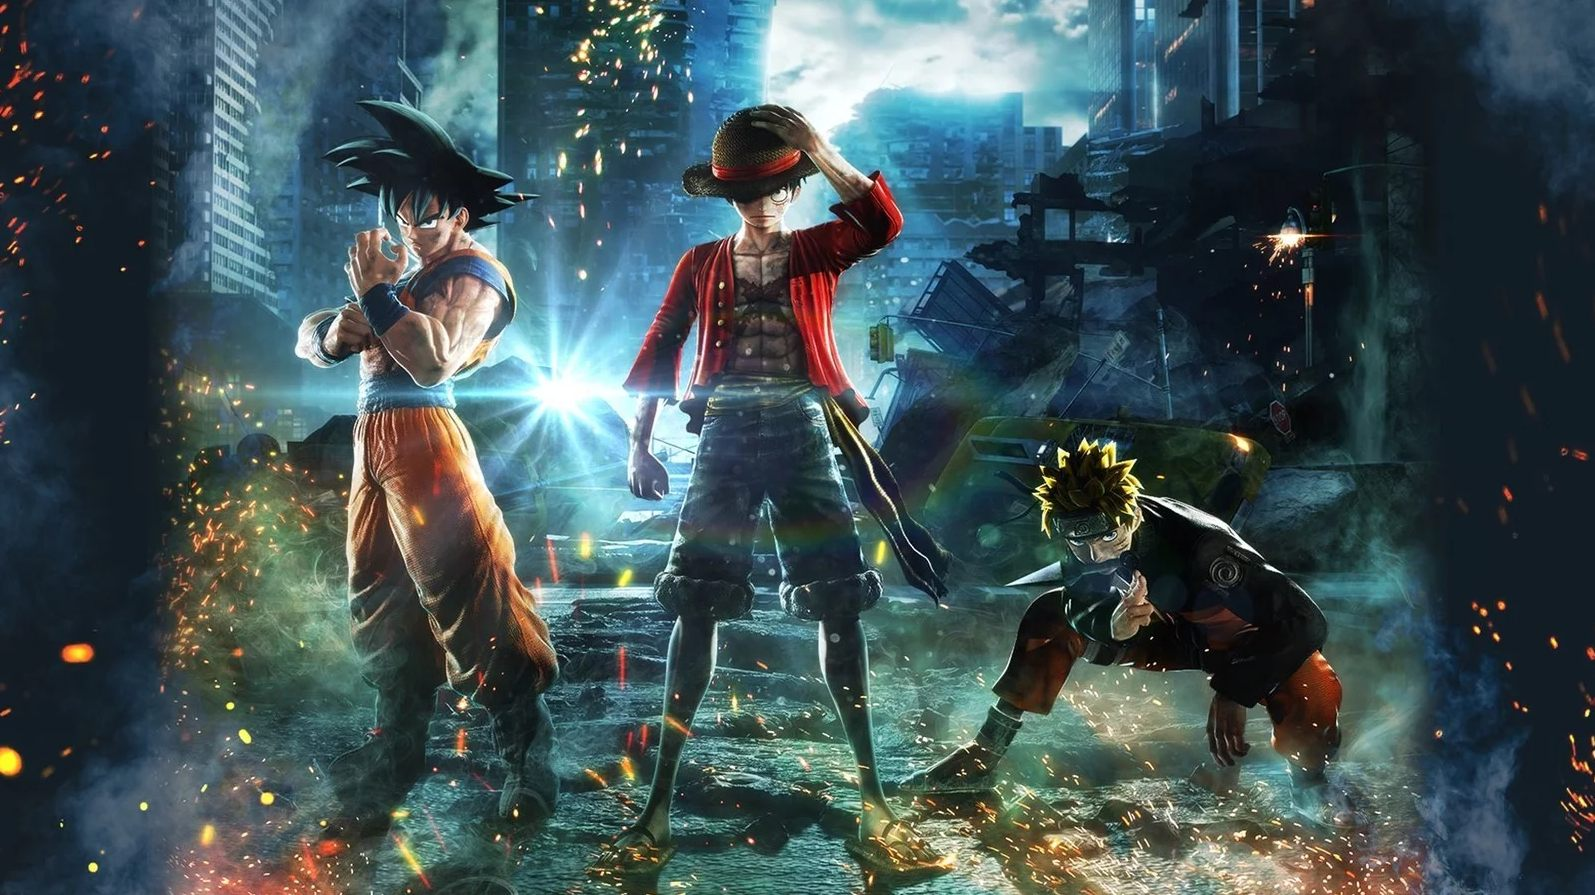 February 2019 NPD Group sales software hardware Jump Force